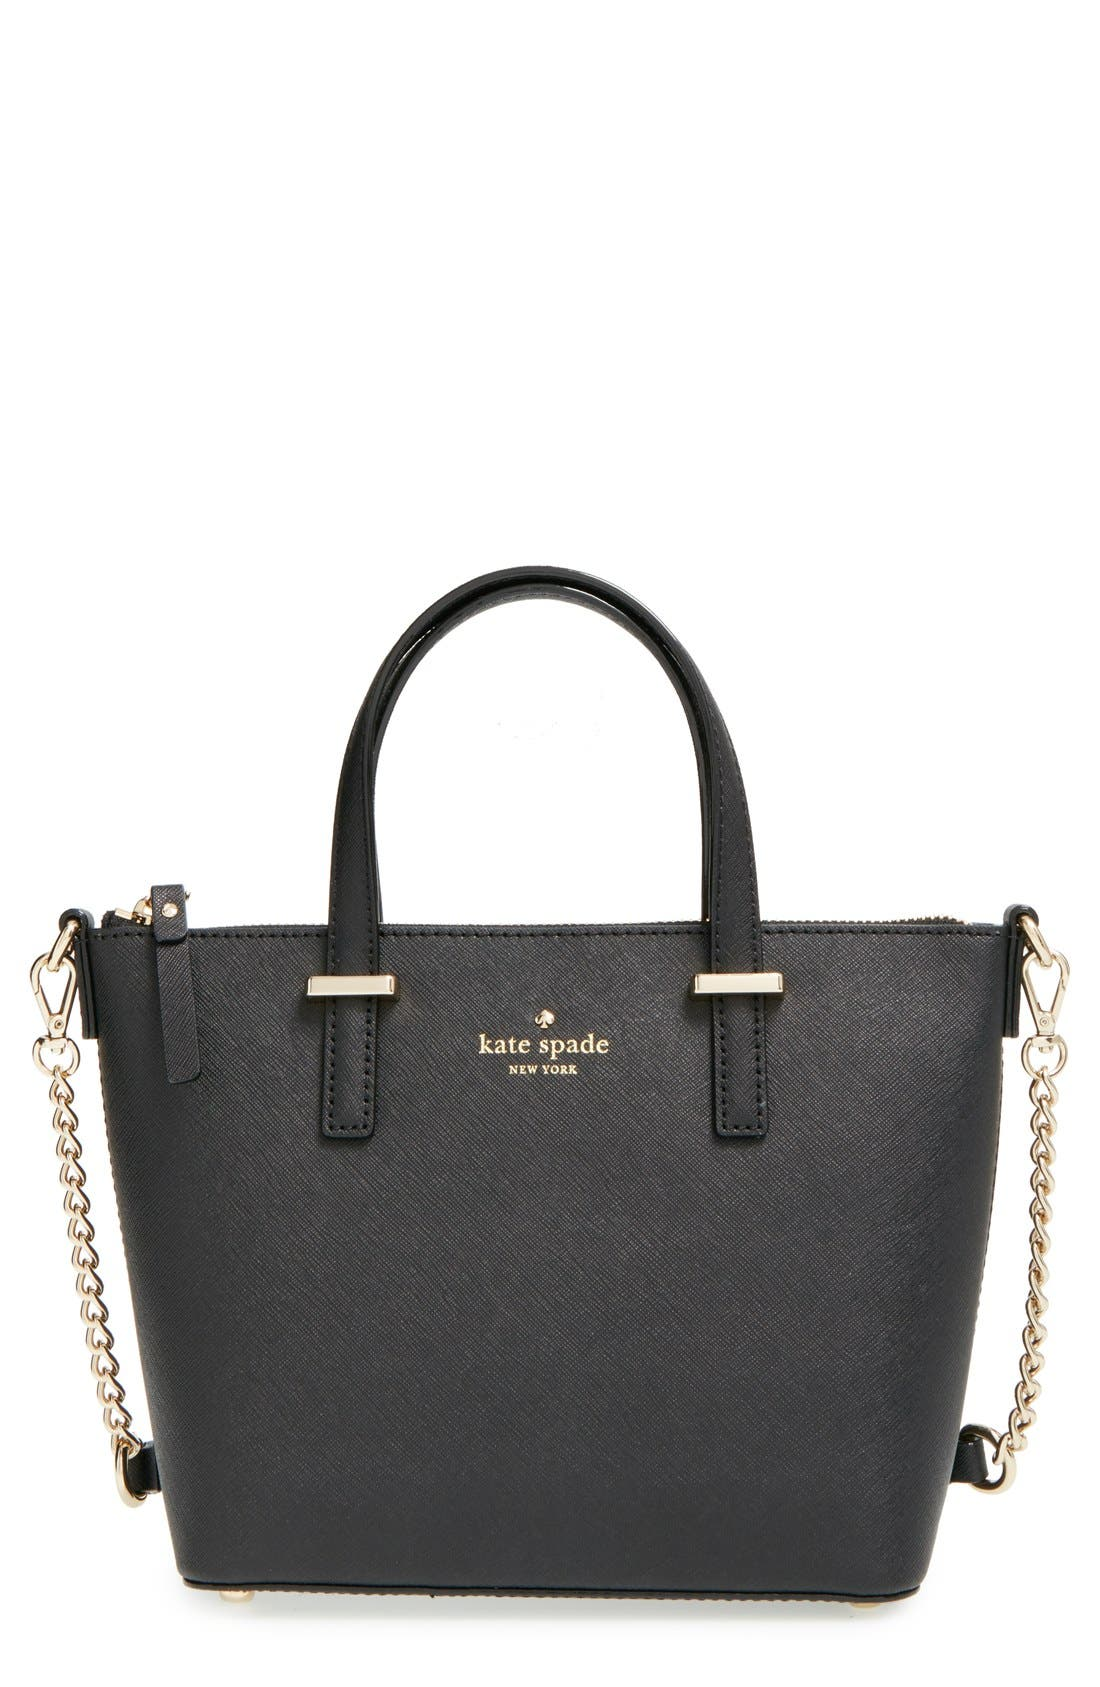 Main Image - kate spade new york 'cedar street - harmony' crossbody bag